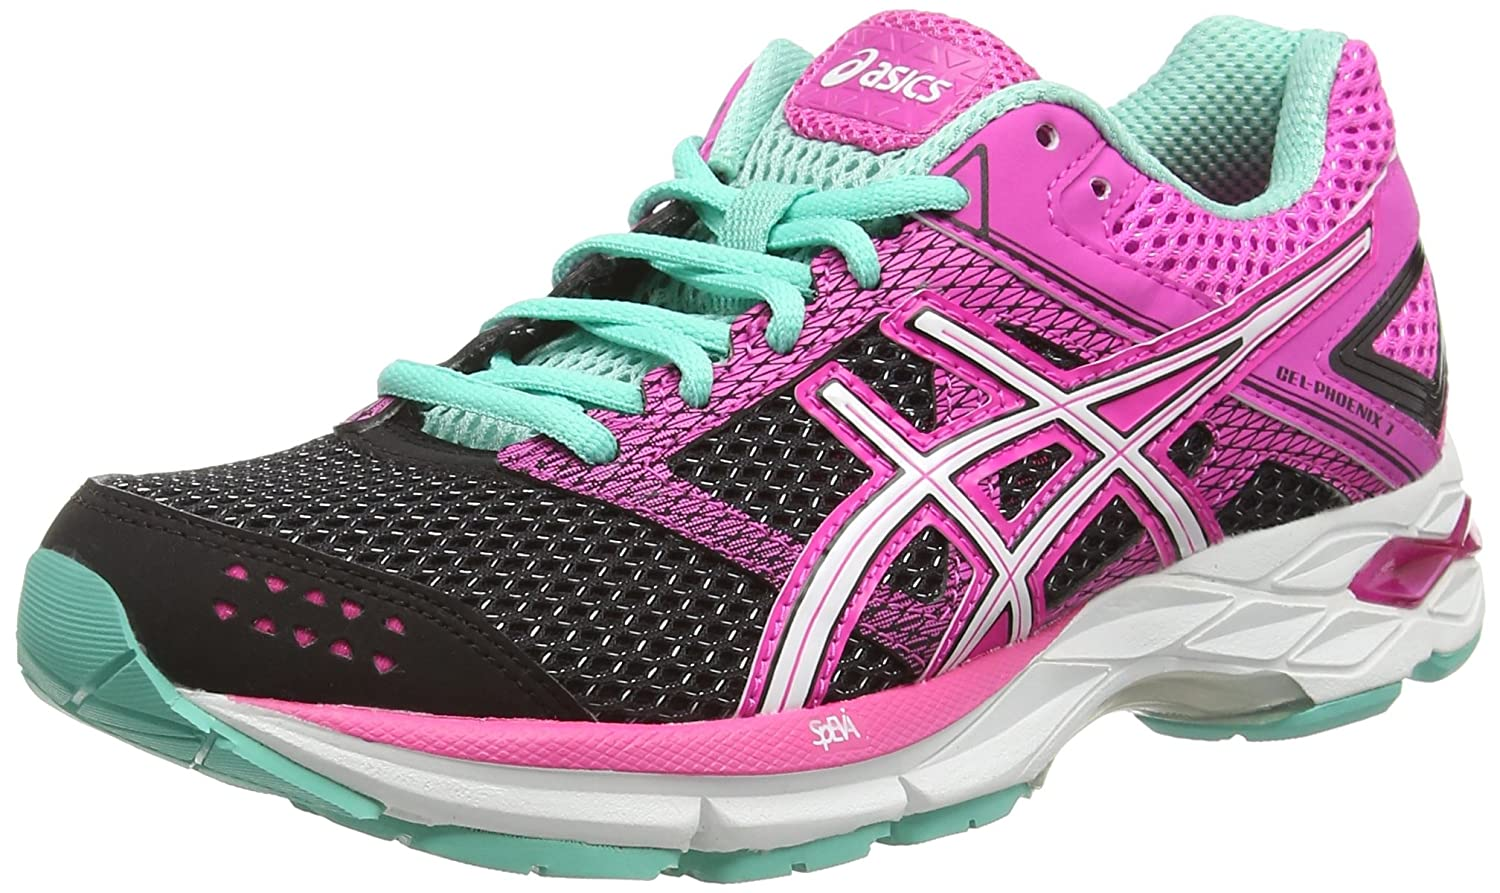 Asics Gel Phoenix 7 Women's Training Running Shoesp Authentic